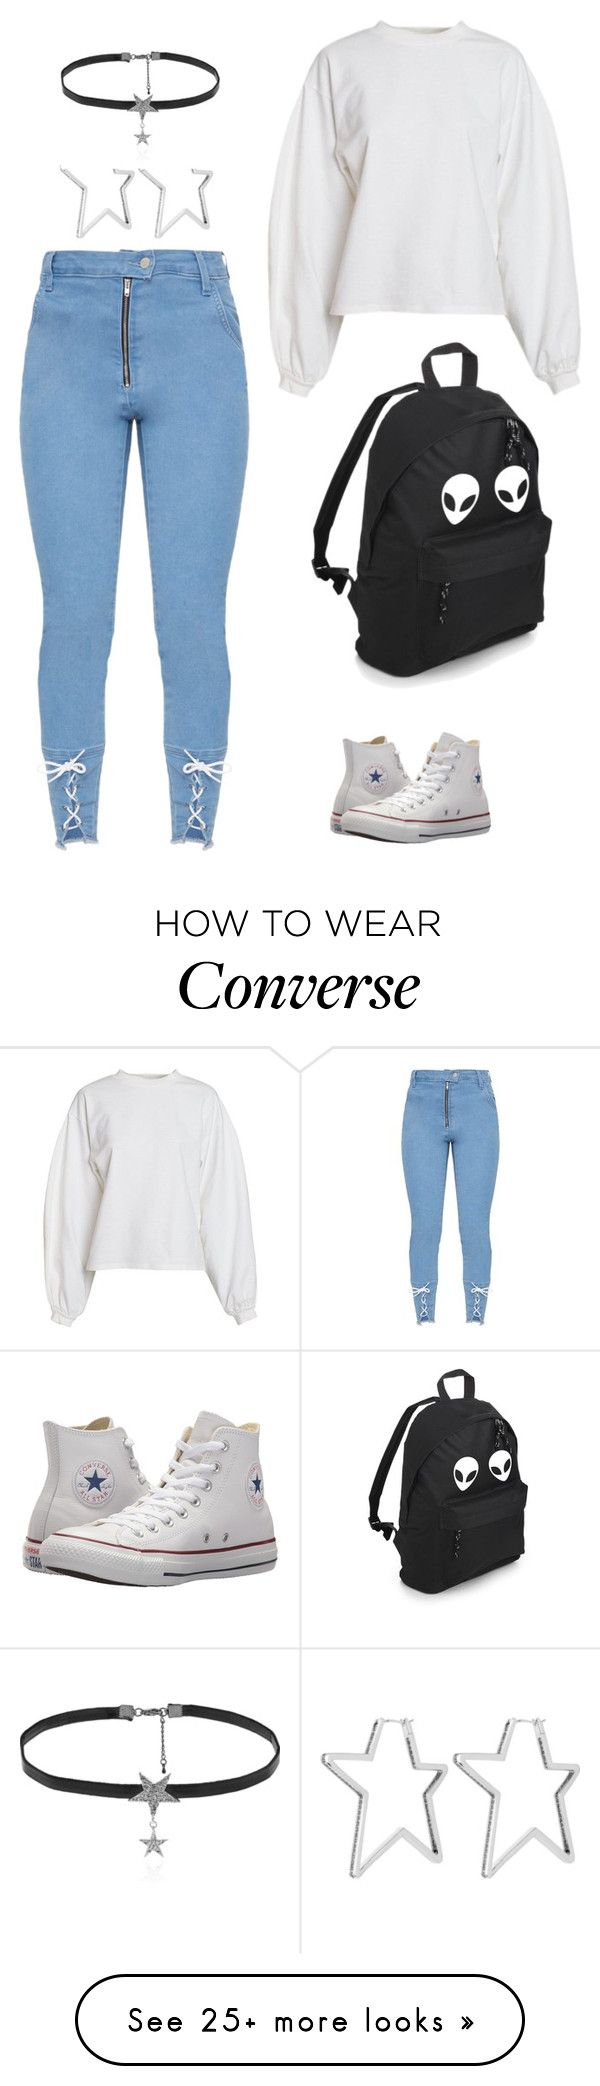 """Stars"" by jadinii on Polyvore featuring Henri Bendel, NLY Trend, Converse and Love Rocks"